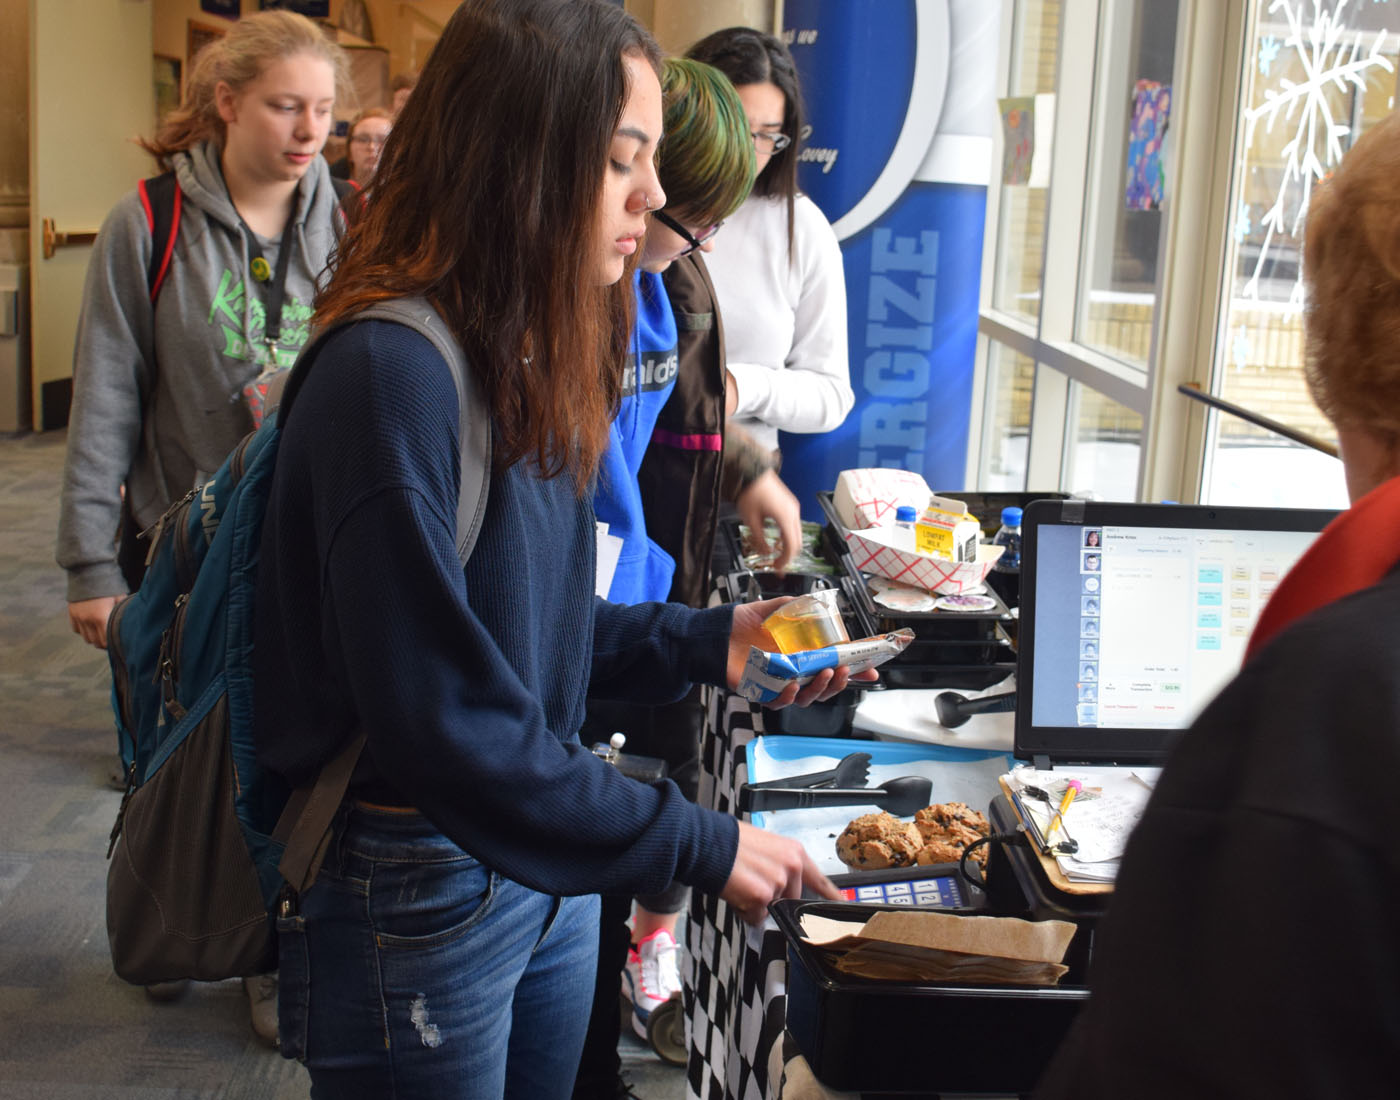 Student getting breakfast at the 2nd chance breakfast line